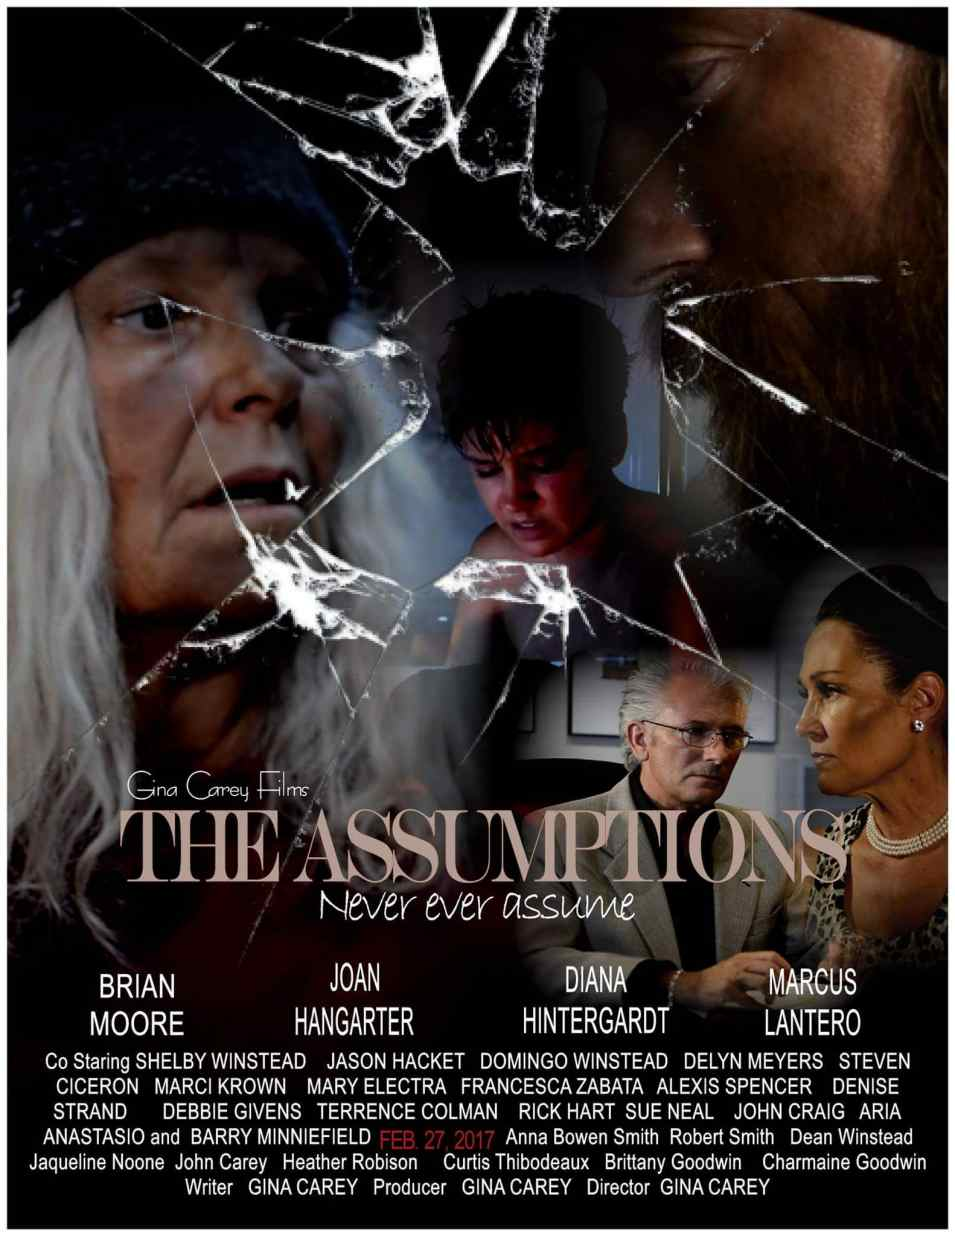 The Assumptions Film Poster, Photo courtesy Gina Carey Films